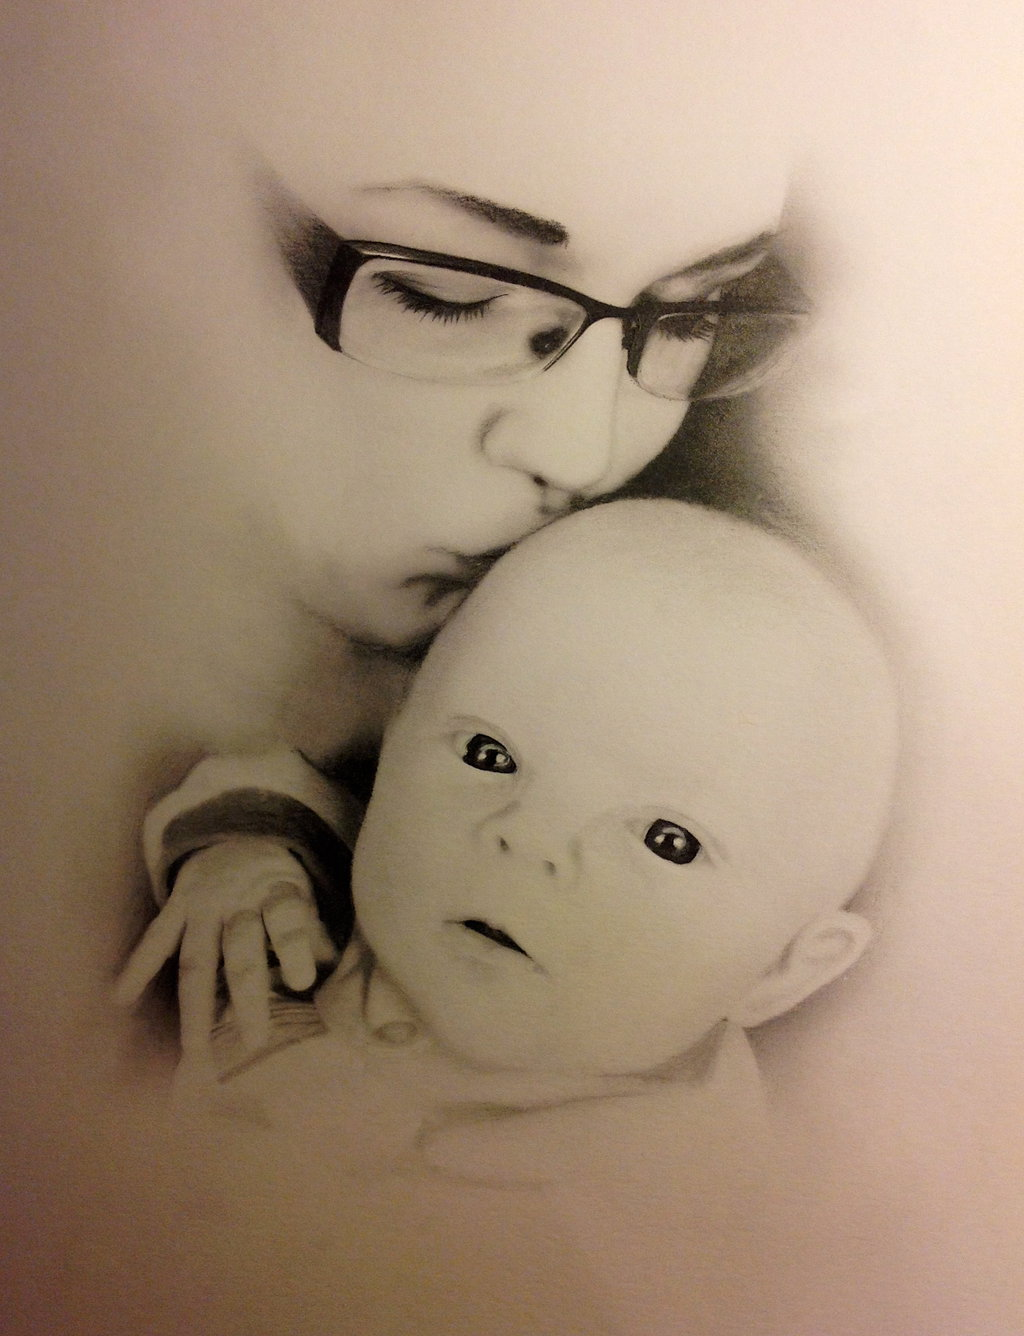 1024x1336 Mother And Son By MLMart On DeviantArt